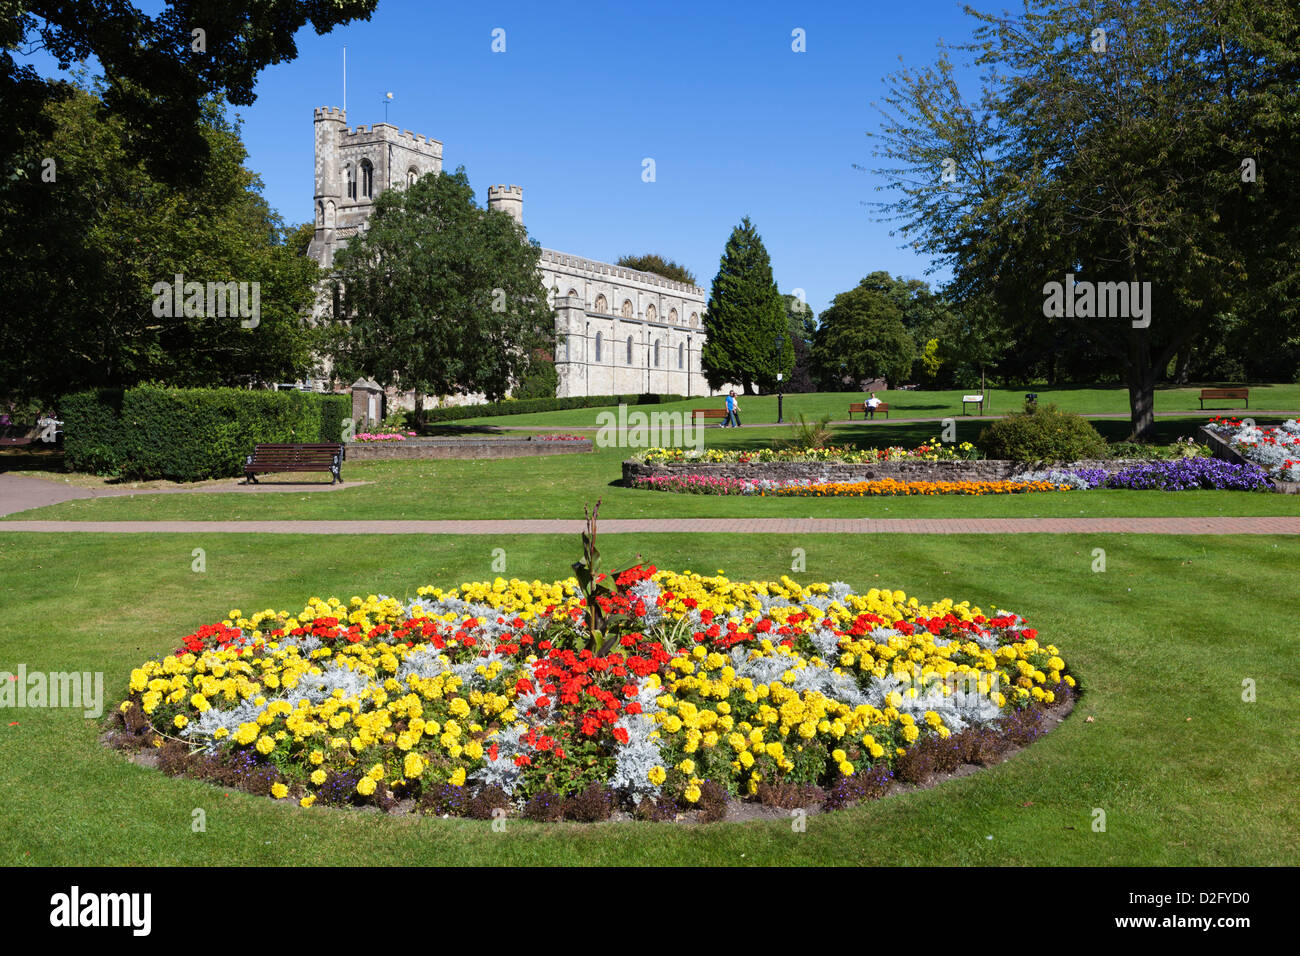 Priory Gardens and Priory Church of St Peter - Stock Image